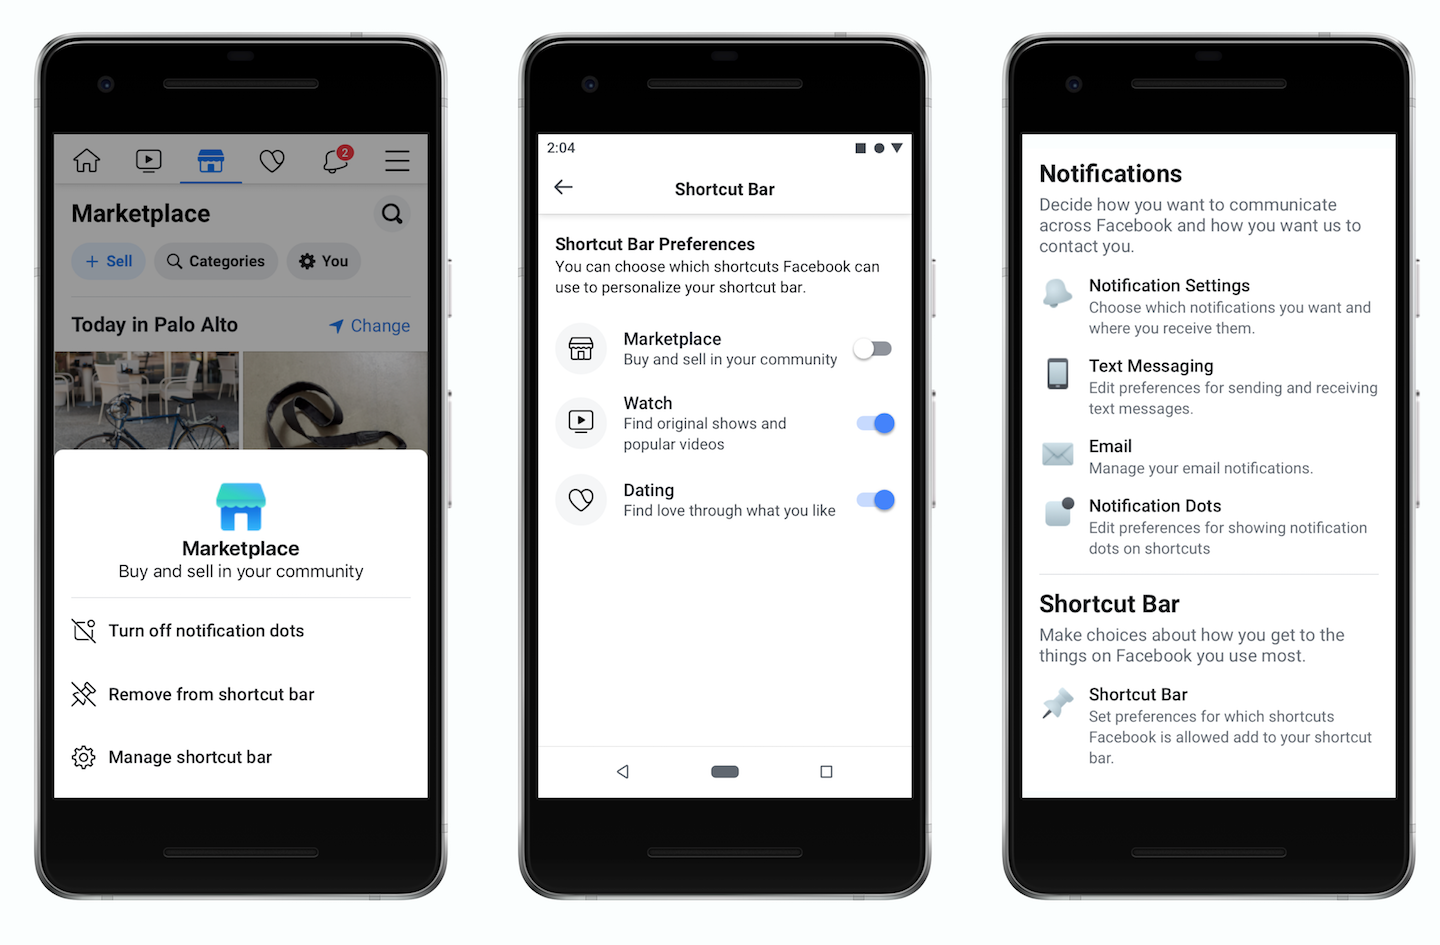 Facebook to give you the option to turn off notification dots